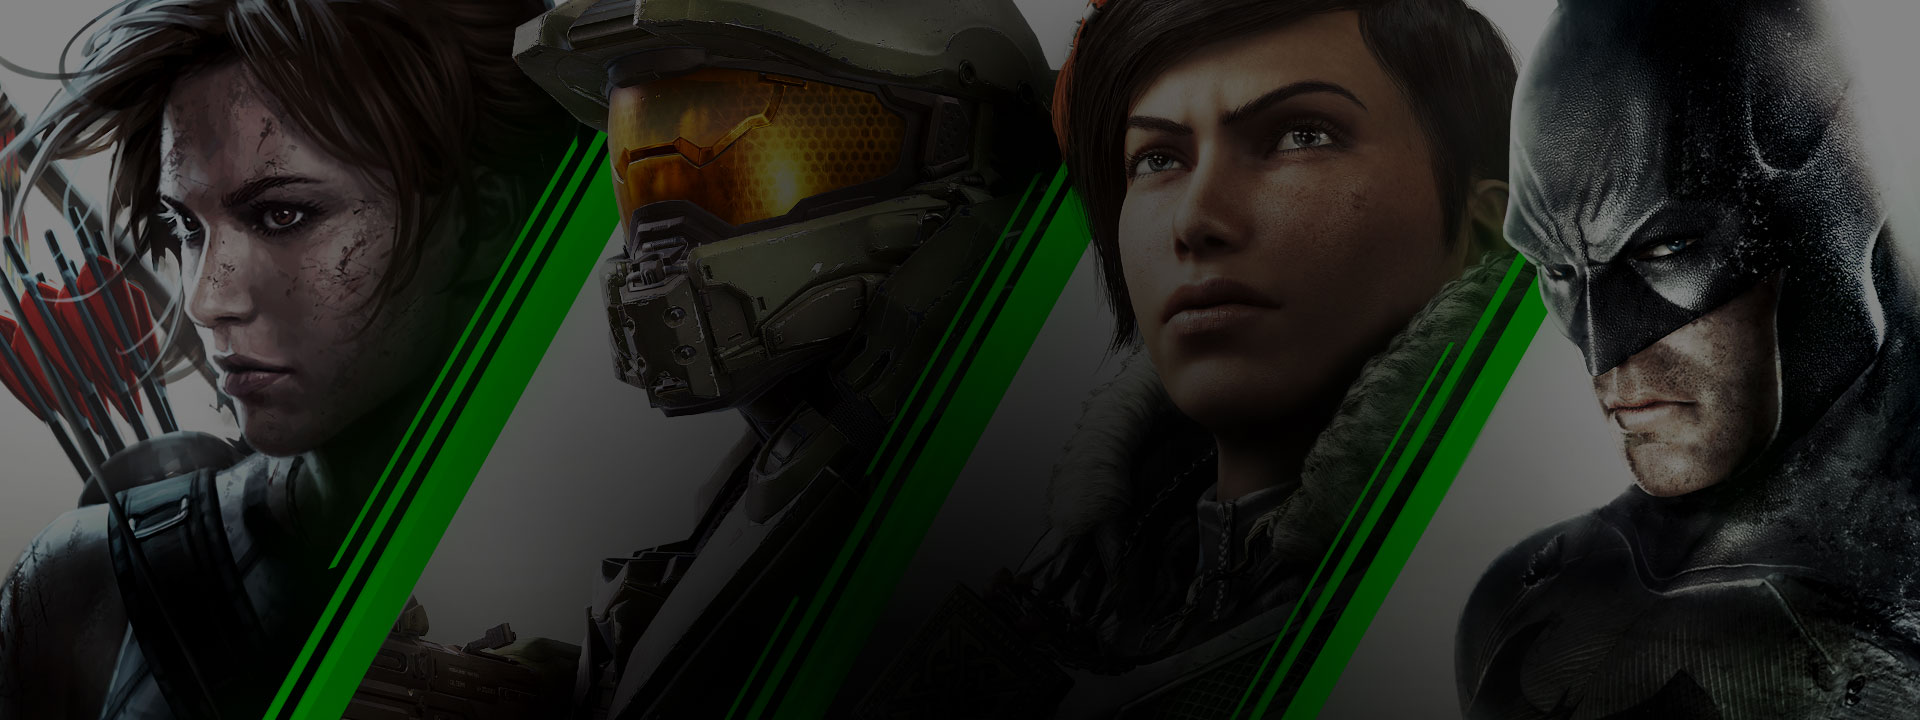 En fotomontasje av tegn fra Xbox One-spill. Lara Croft, Master Chief, Kait Diaz, og Batman.